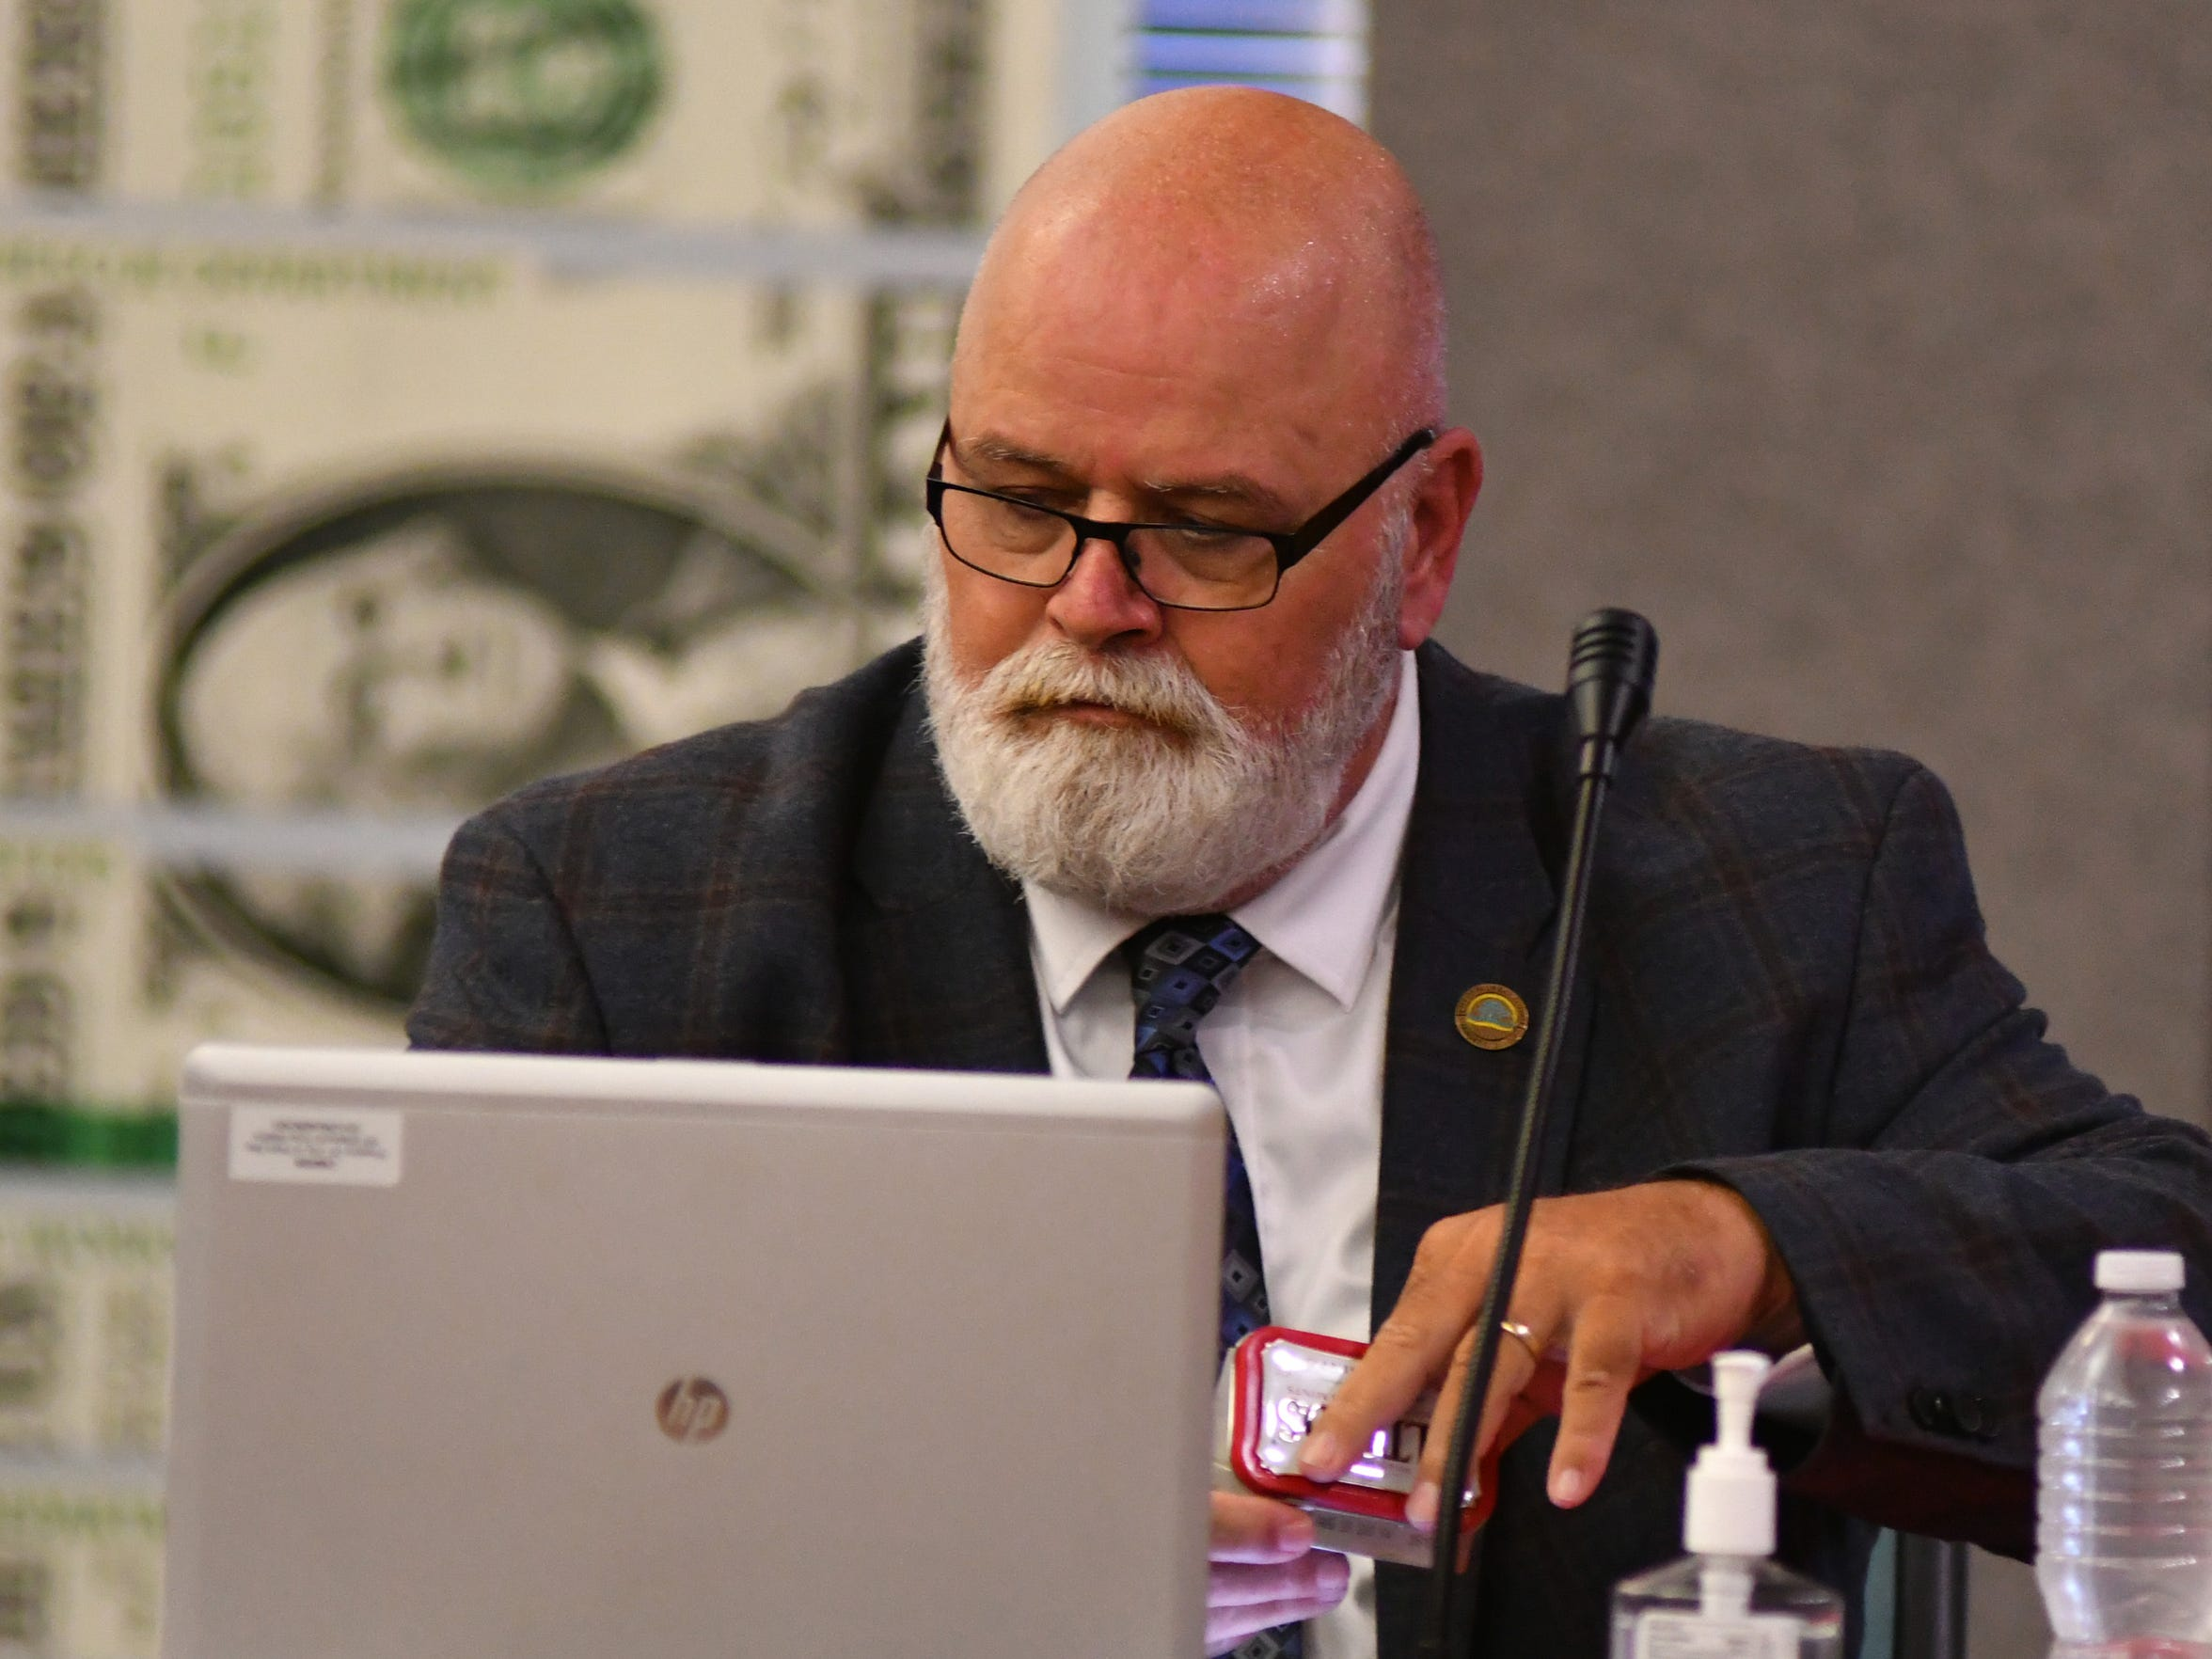 """Deputy Palm Bay City Manager David Isnardi said having the Florida Department of Law Enforcement and the FBI looking into operations in Palm Bay is concerning. But, he added: """"What can I do? I didn't do anything wrong."""""""